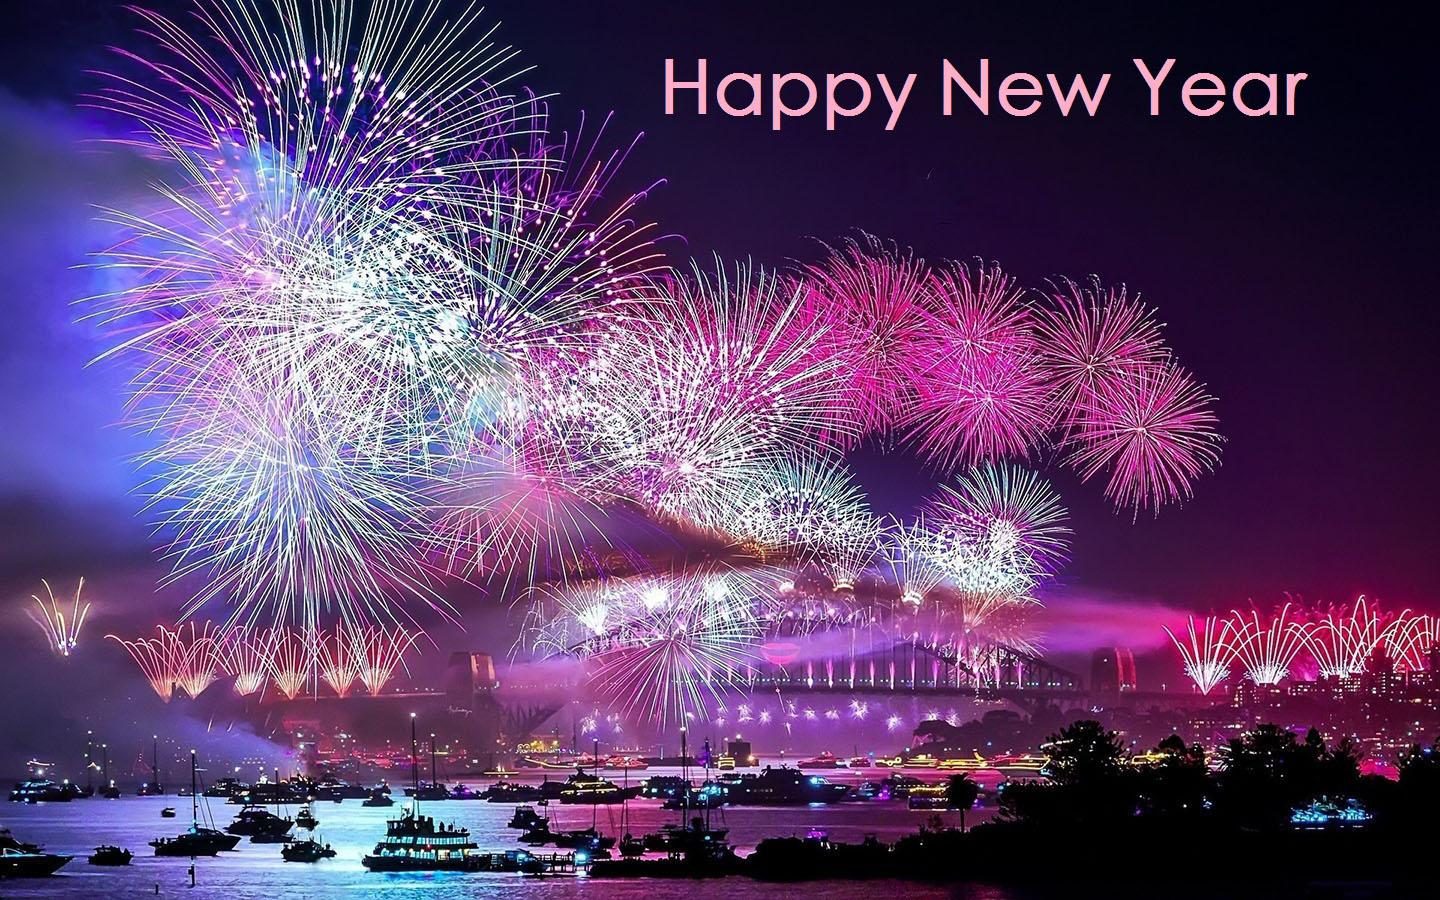 new year fireworks wallpaper - android apps on google play